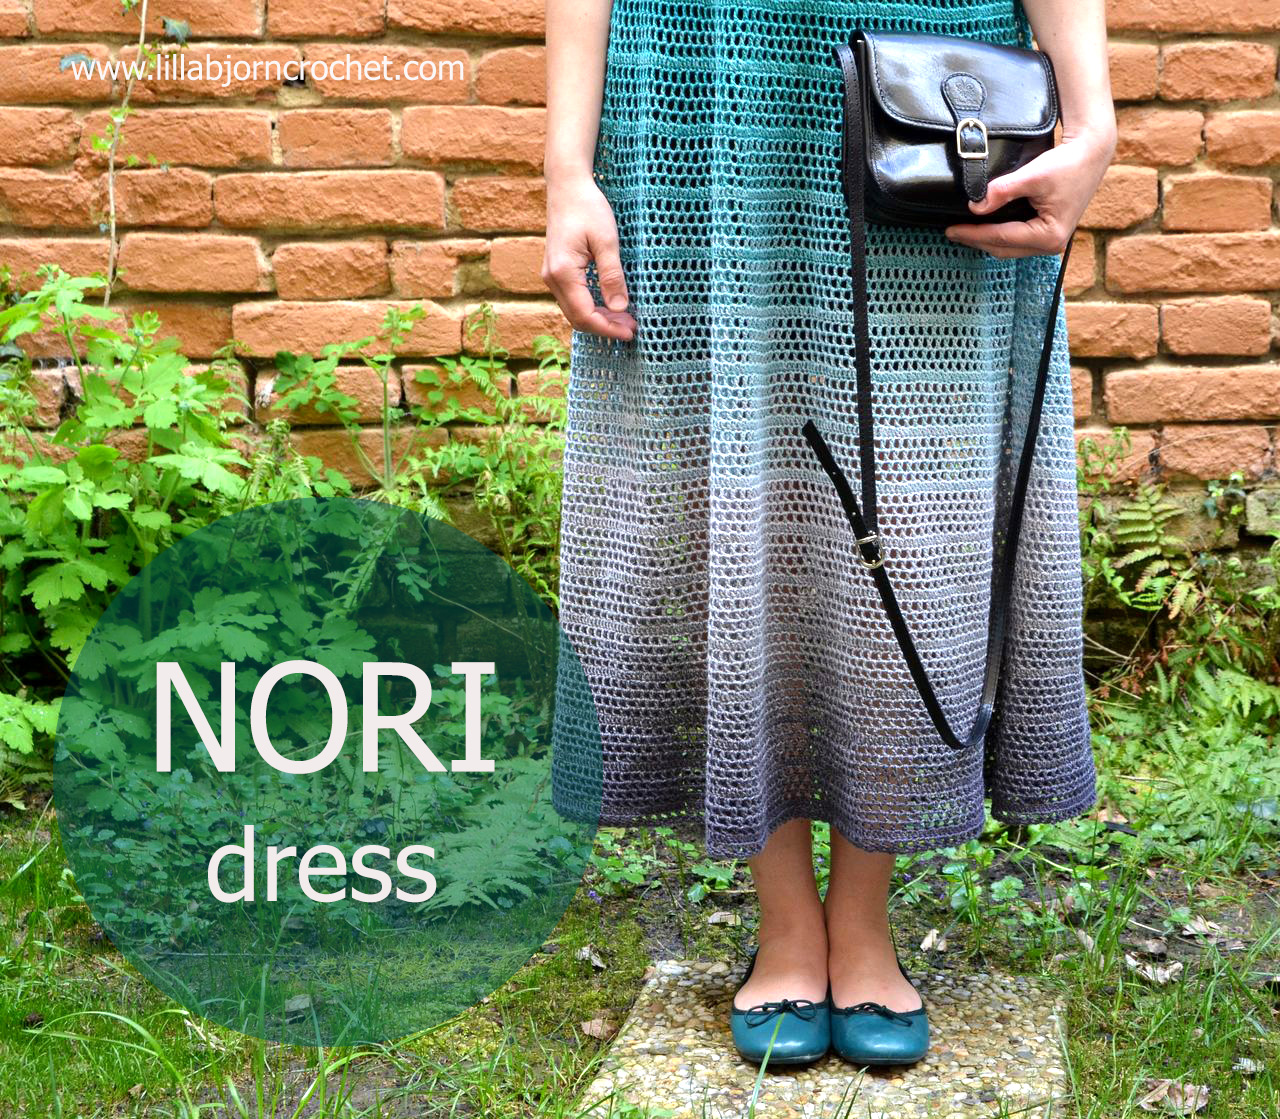 Nori dress - FREE crochet pattern by LillaBjornCrochet.com